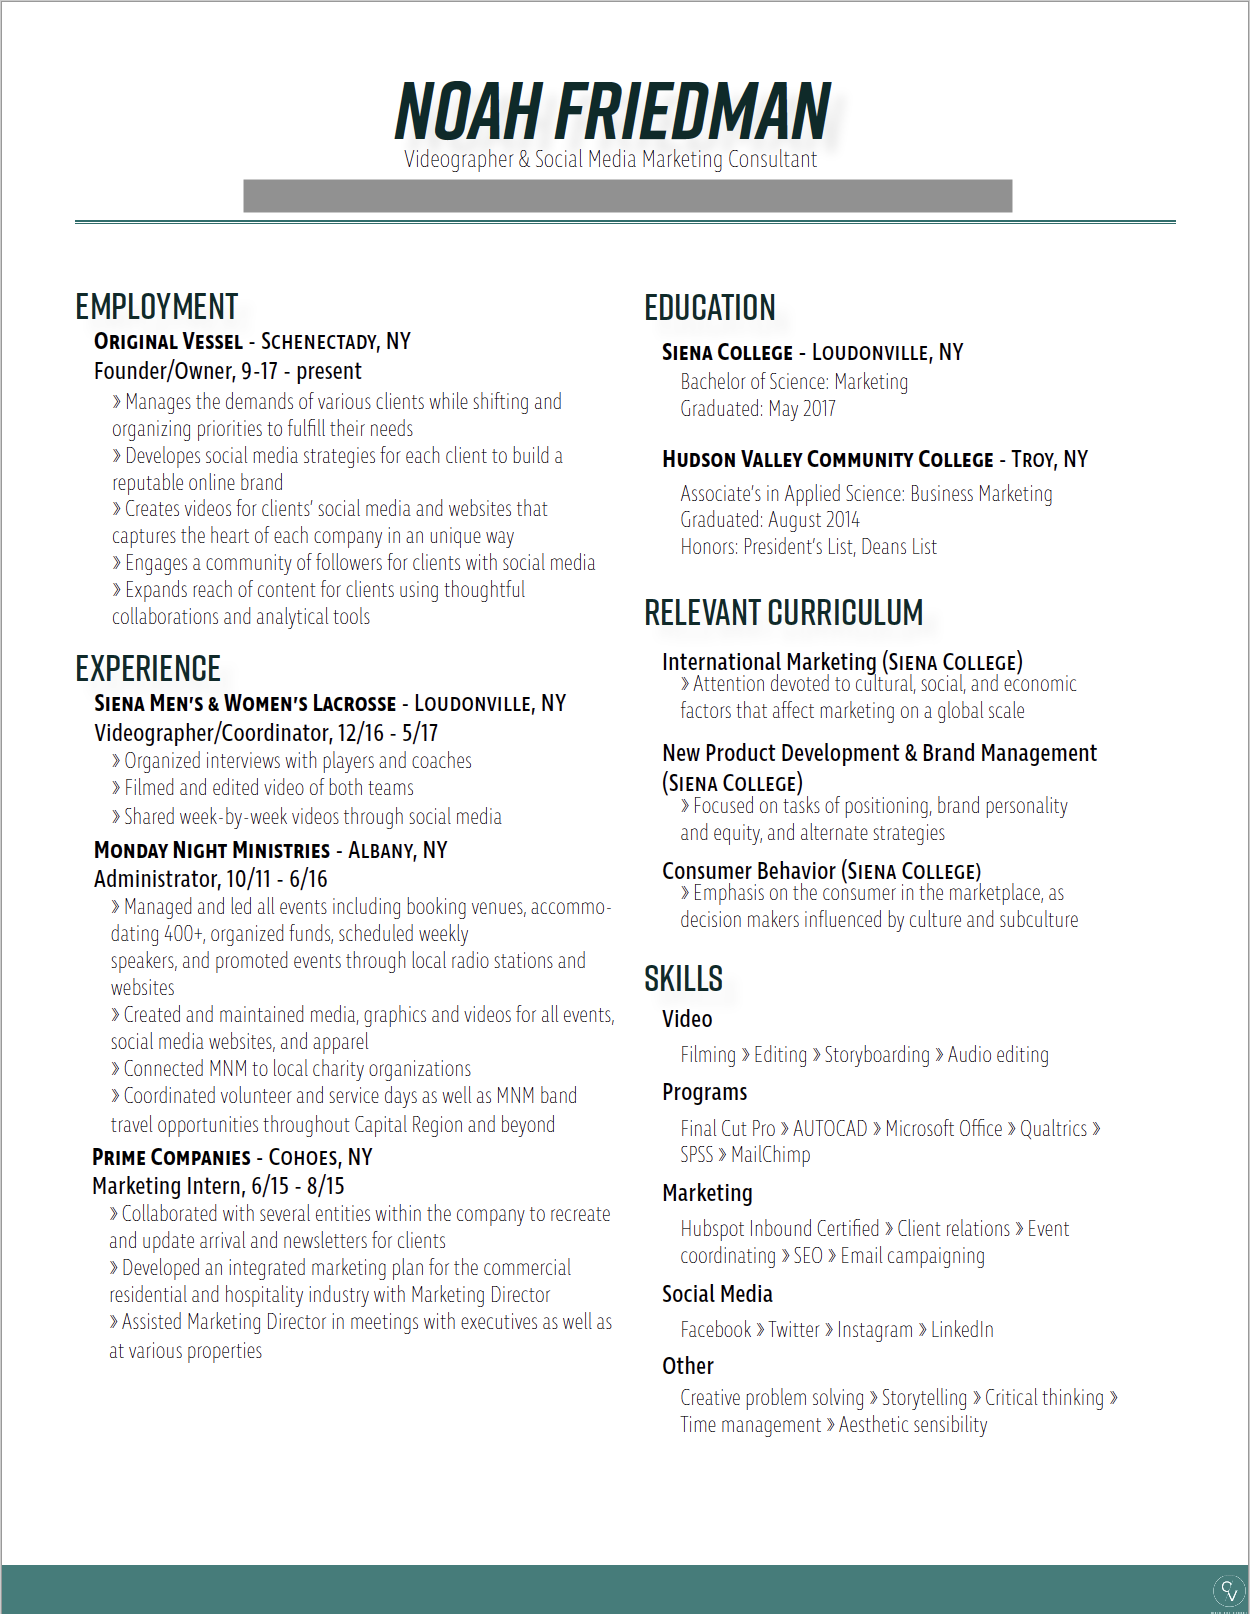 Resume design by Sarah Heikkinen.